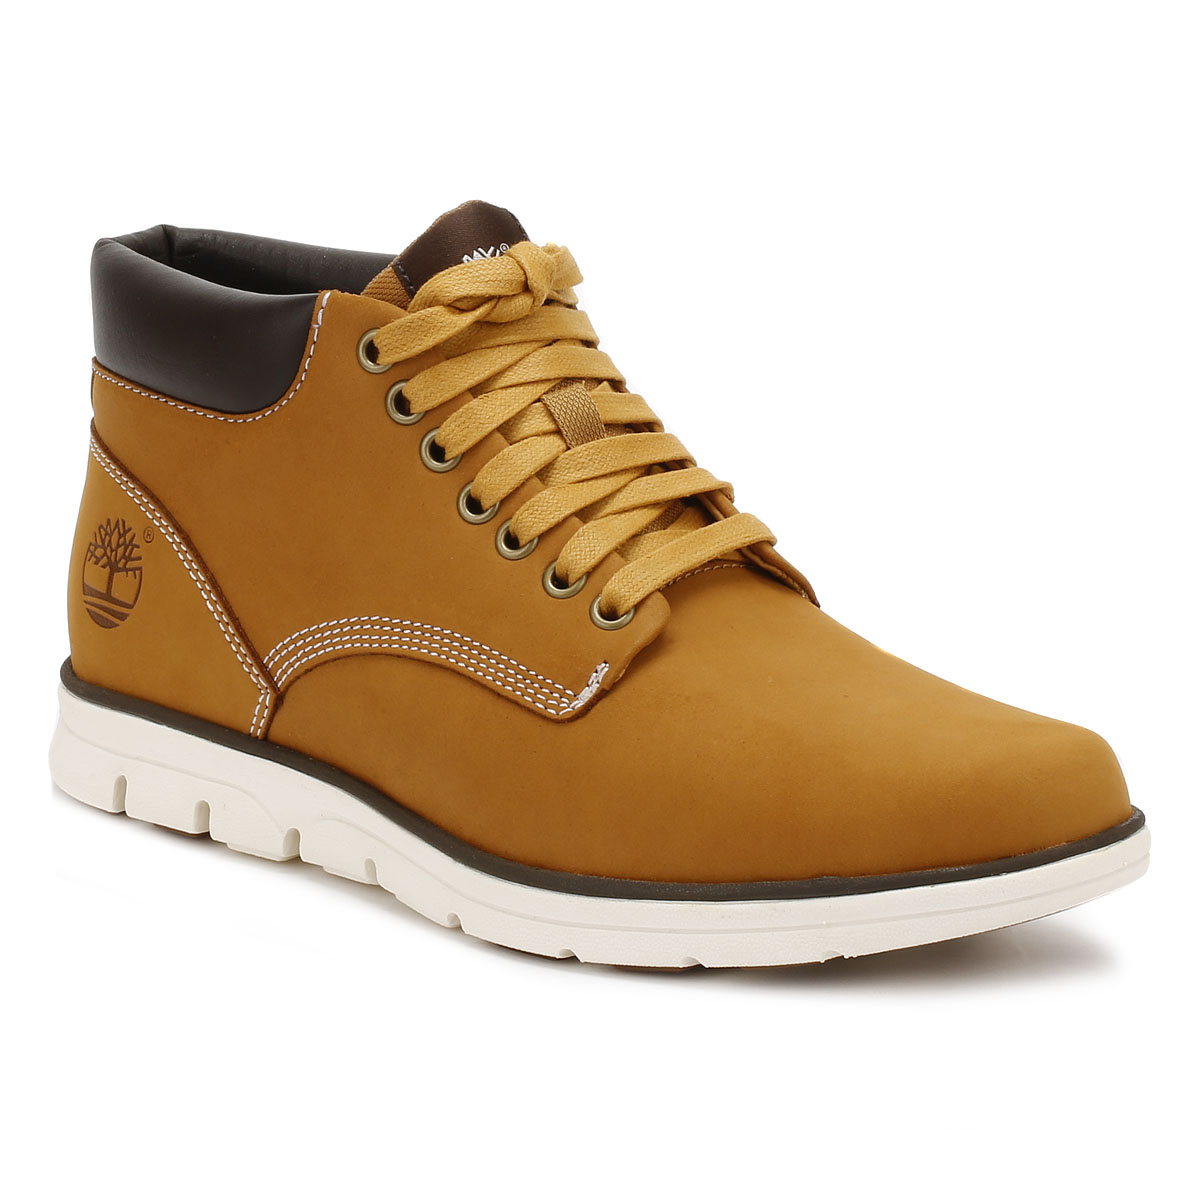 Mens Yellow Leather Shoes